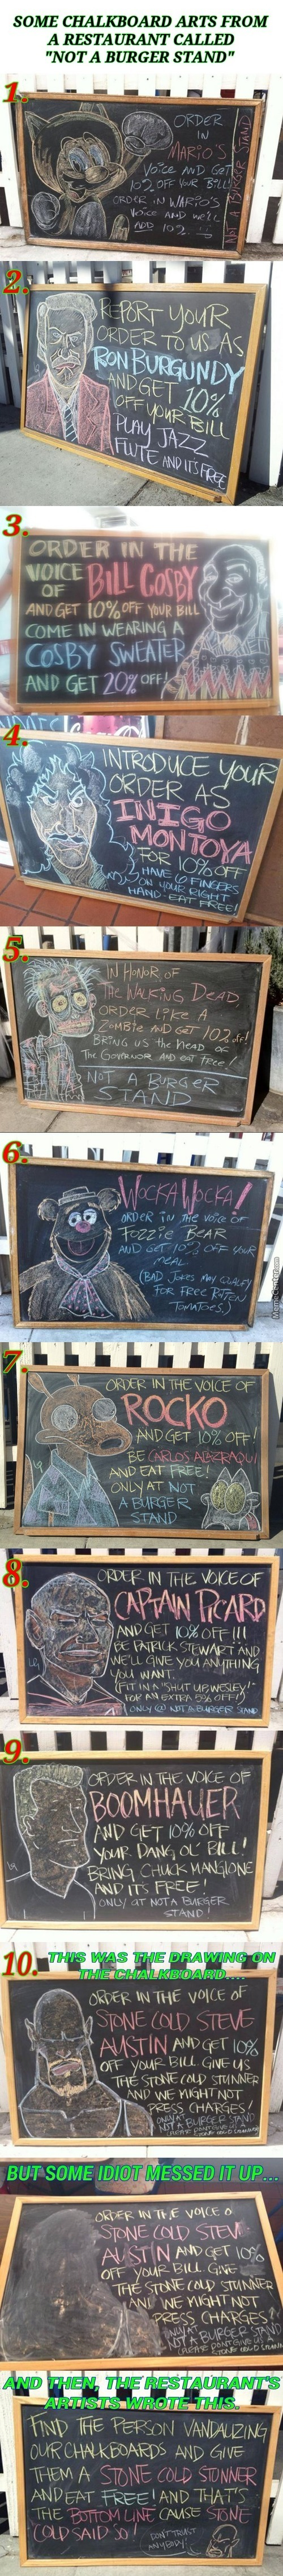 Chalkboard Arts Of Not A Burger Stand Restaurant